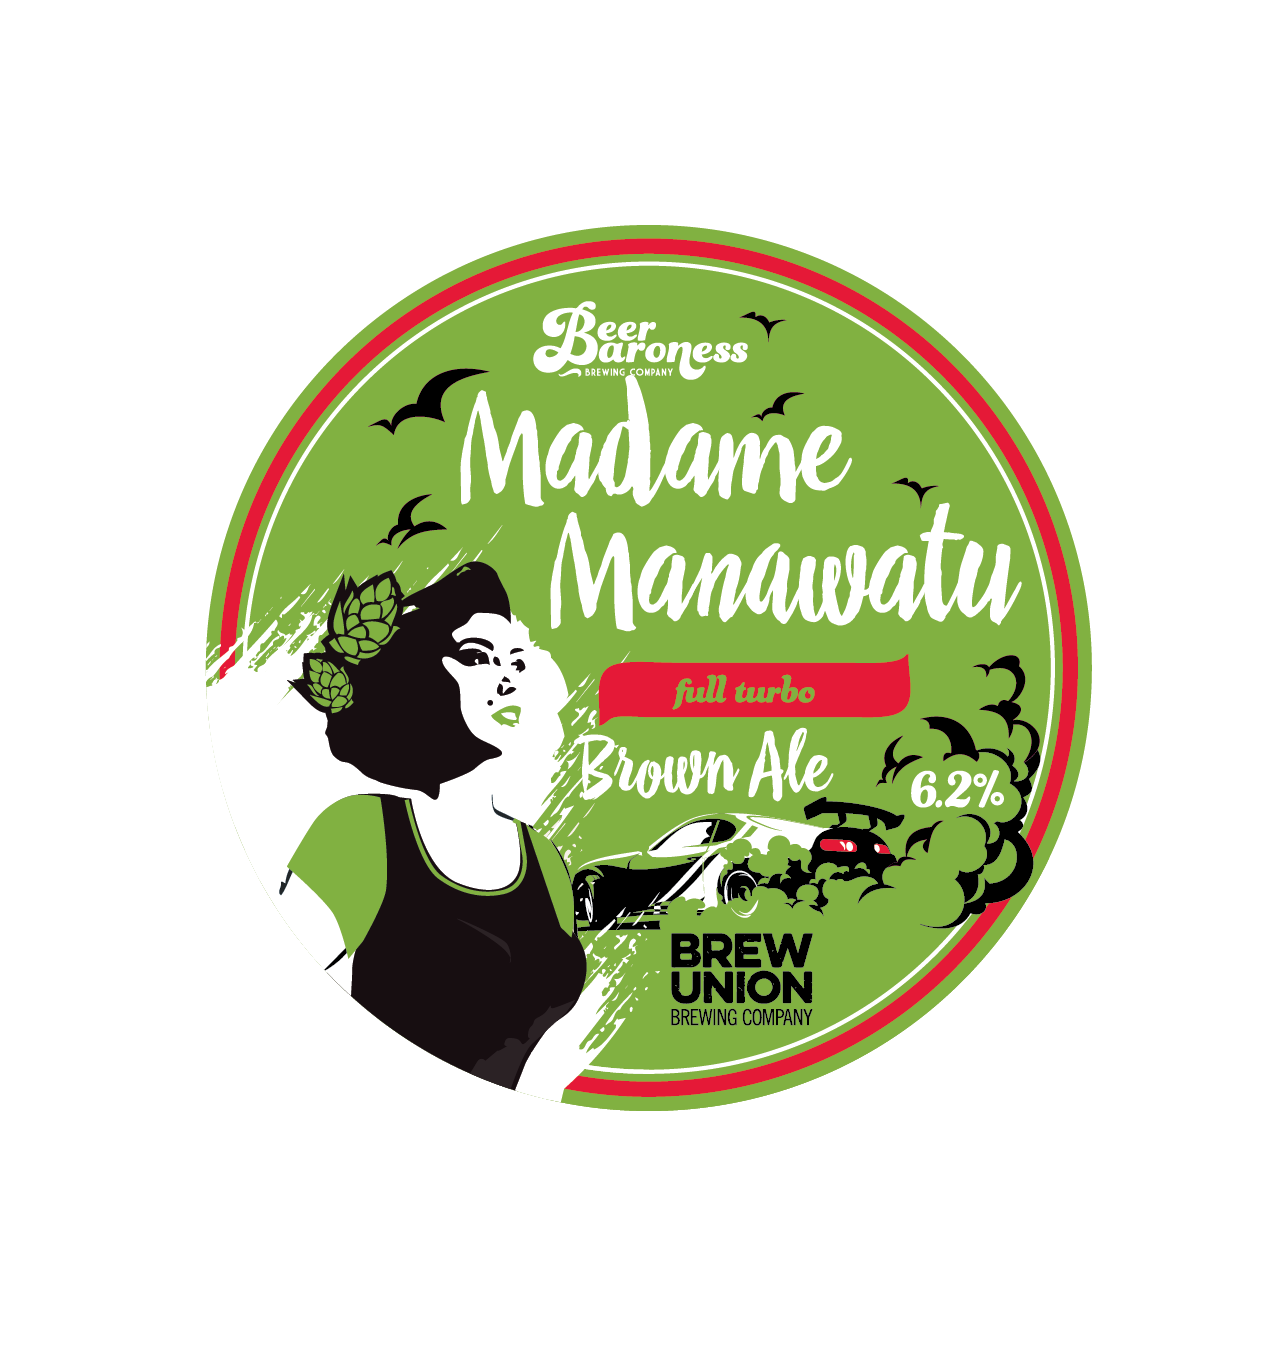 DD004009 Beer Baroness Madame Manawatu Tap Badge Supply T2P - Cropped.png